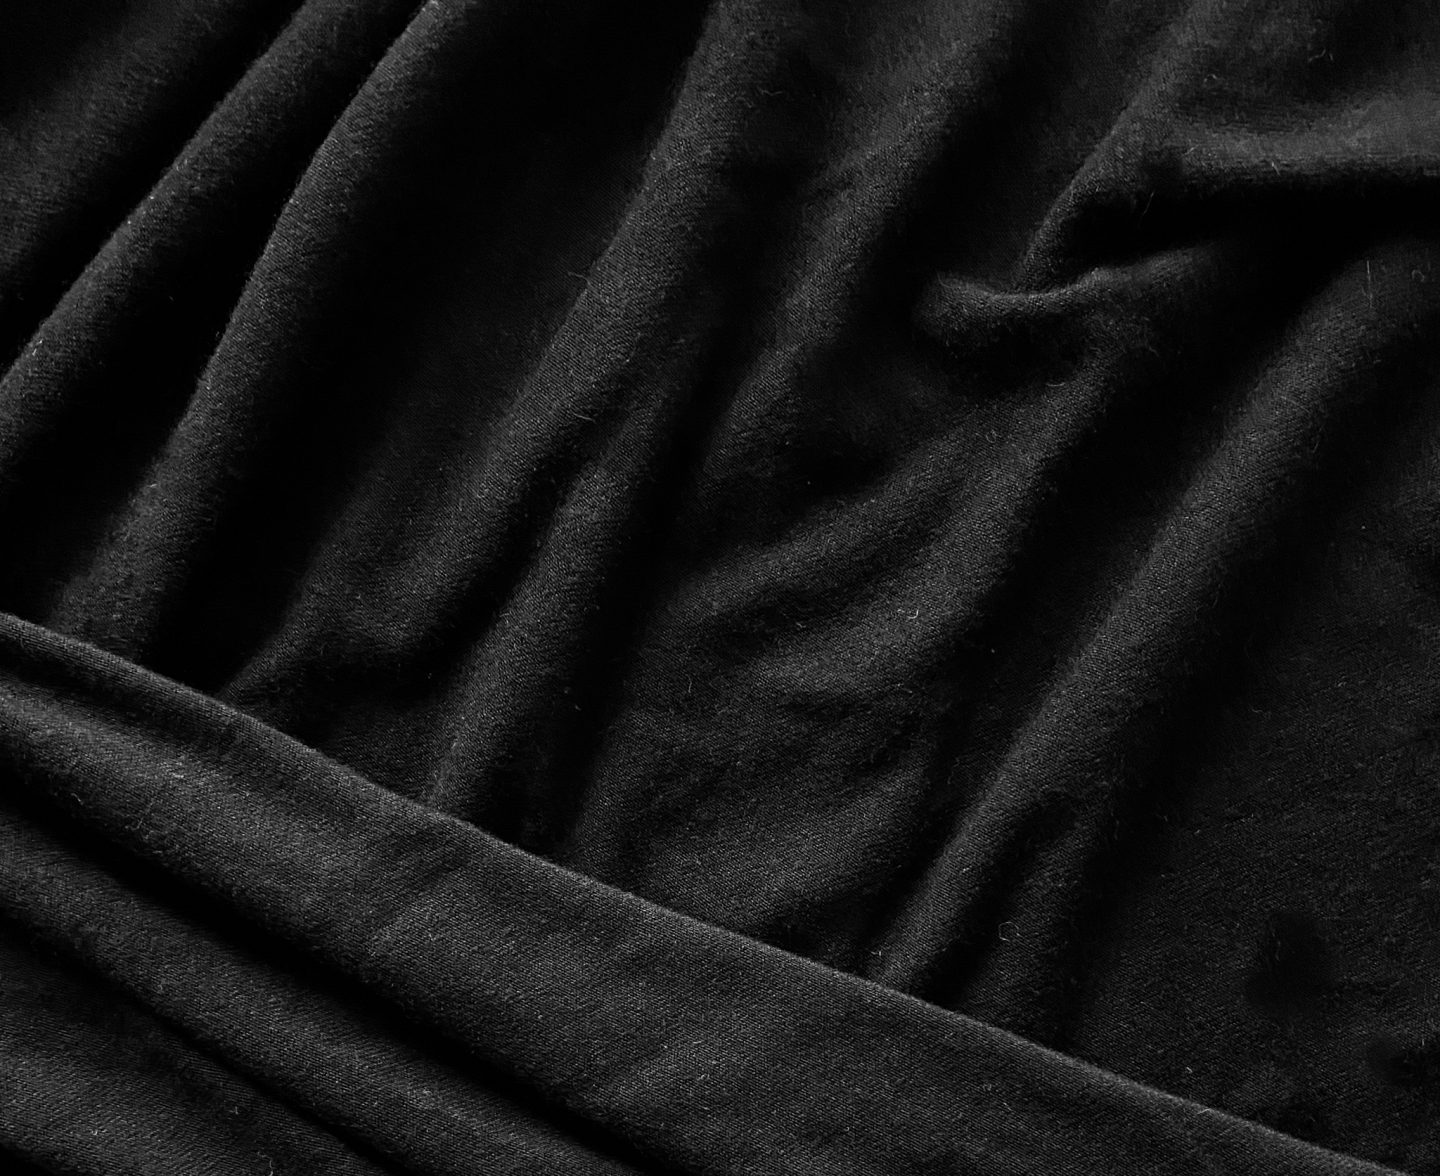 Image of black knit fabric